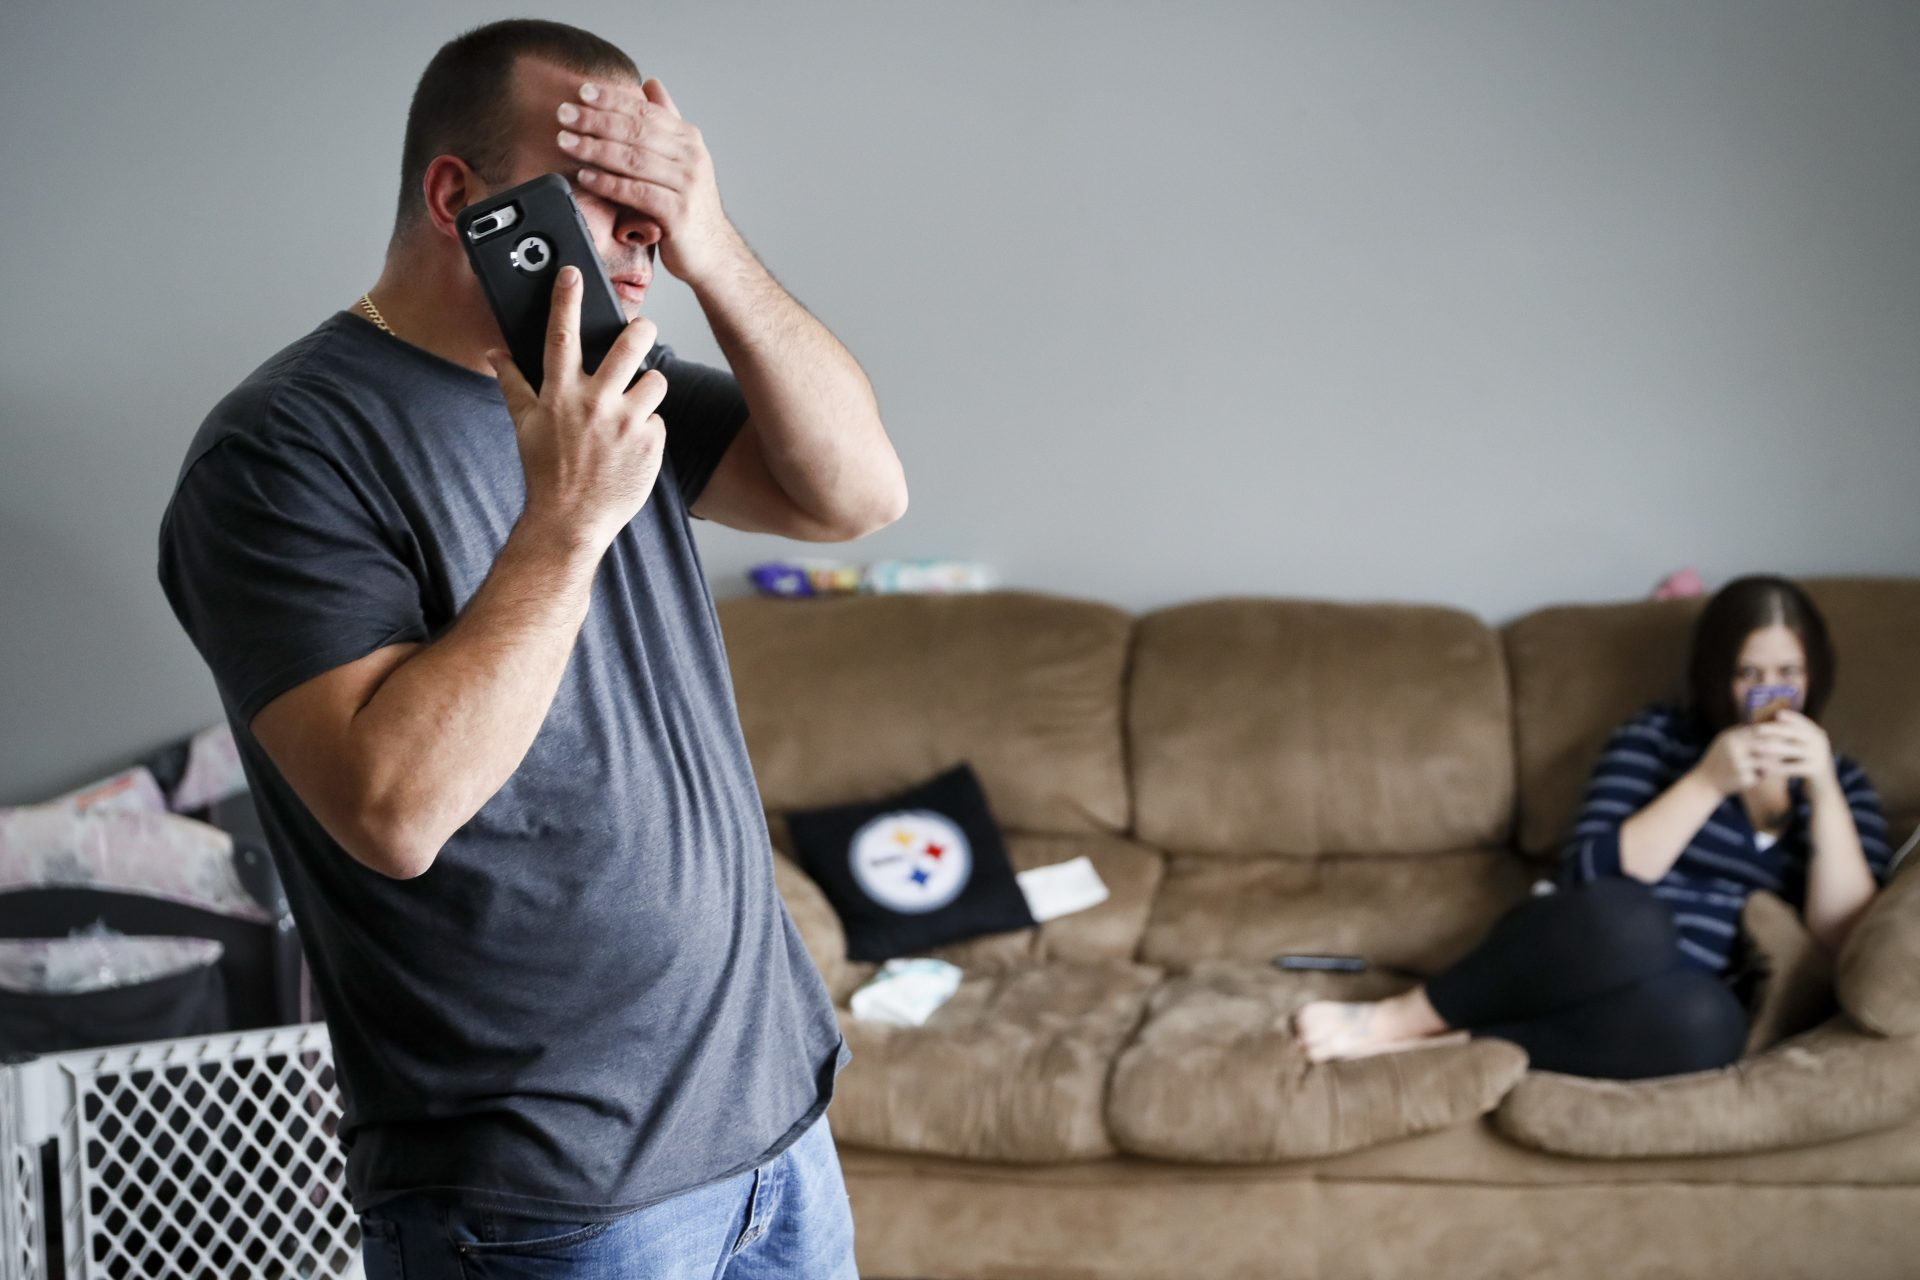 FILE PHOTO: In this Nov. 28, 2018, file photo Tom Wolikow, a General Motors employee who is currently laid-off, left, takes a phone call at home alongside his fiance Rochelle Carlisle in Warren, Ohio. An economic renaissance in the industrial Midwest promised by President Donald Trump has suffered in recent weeks in ways that could be problematic for Trump's 2020 re-election.